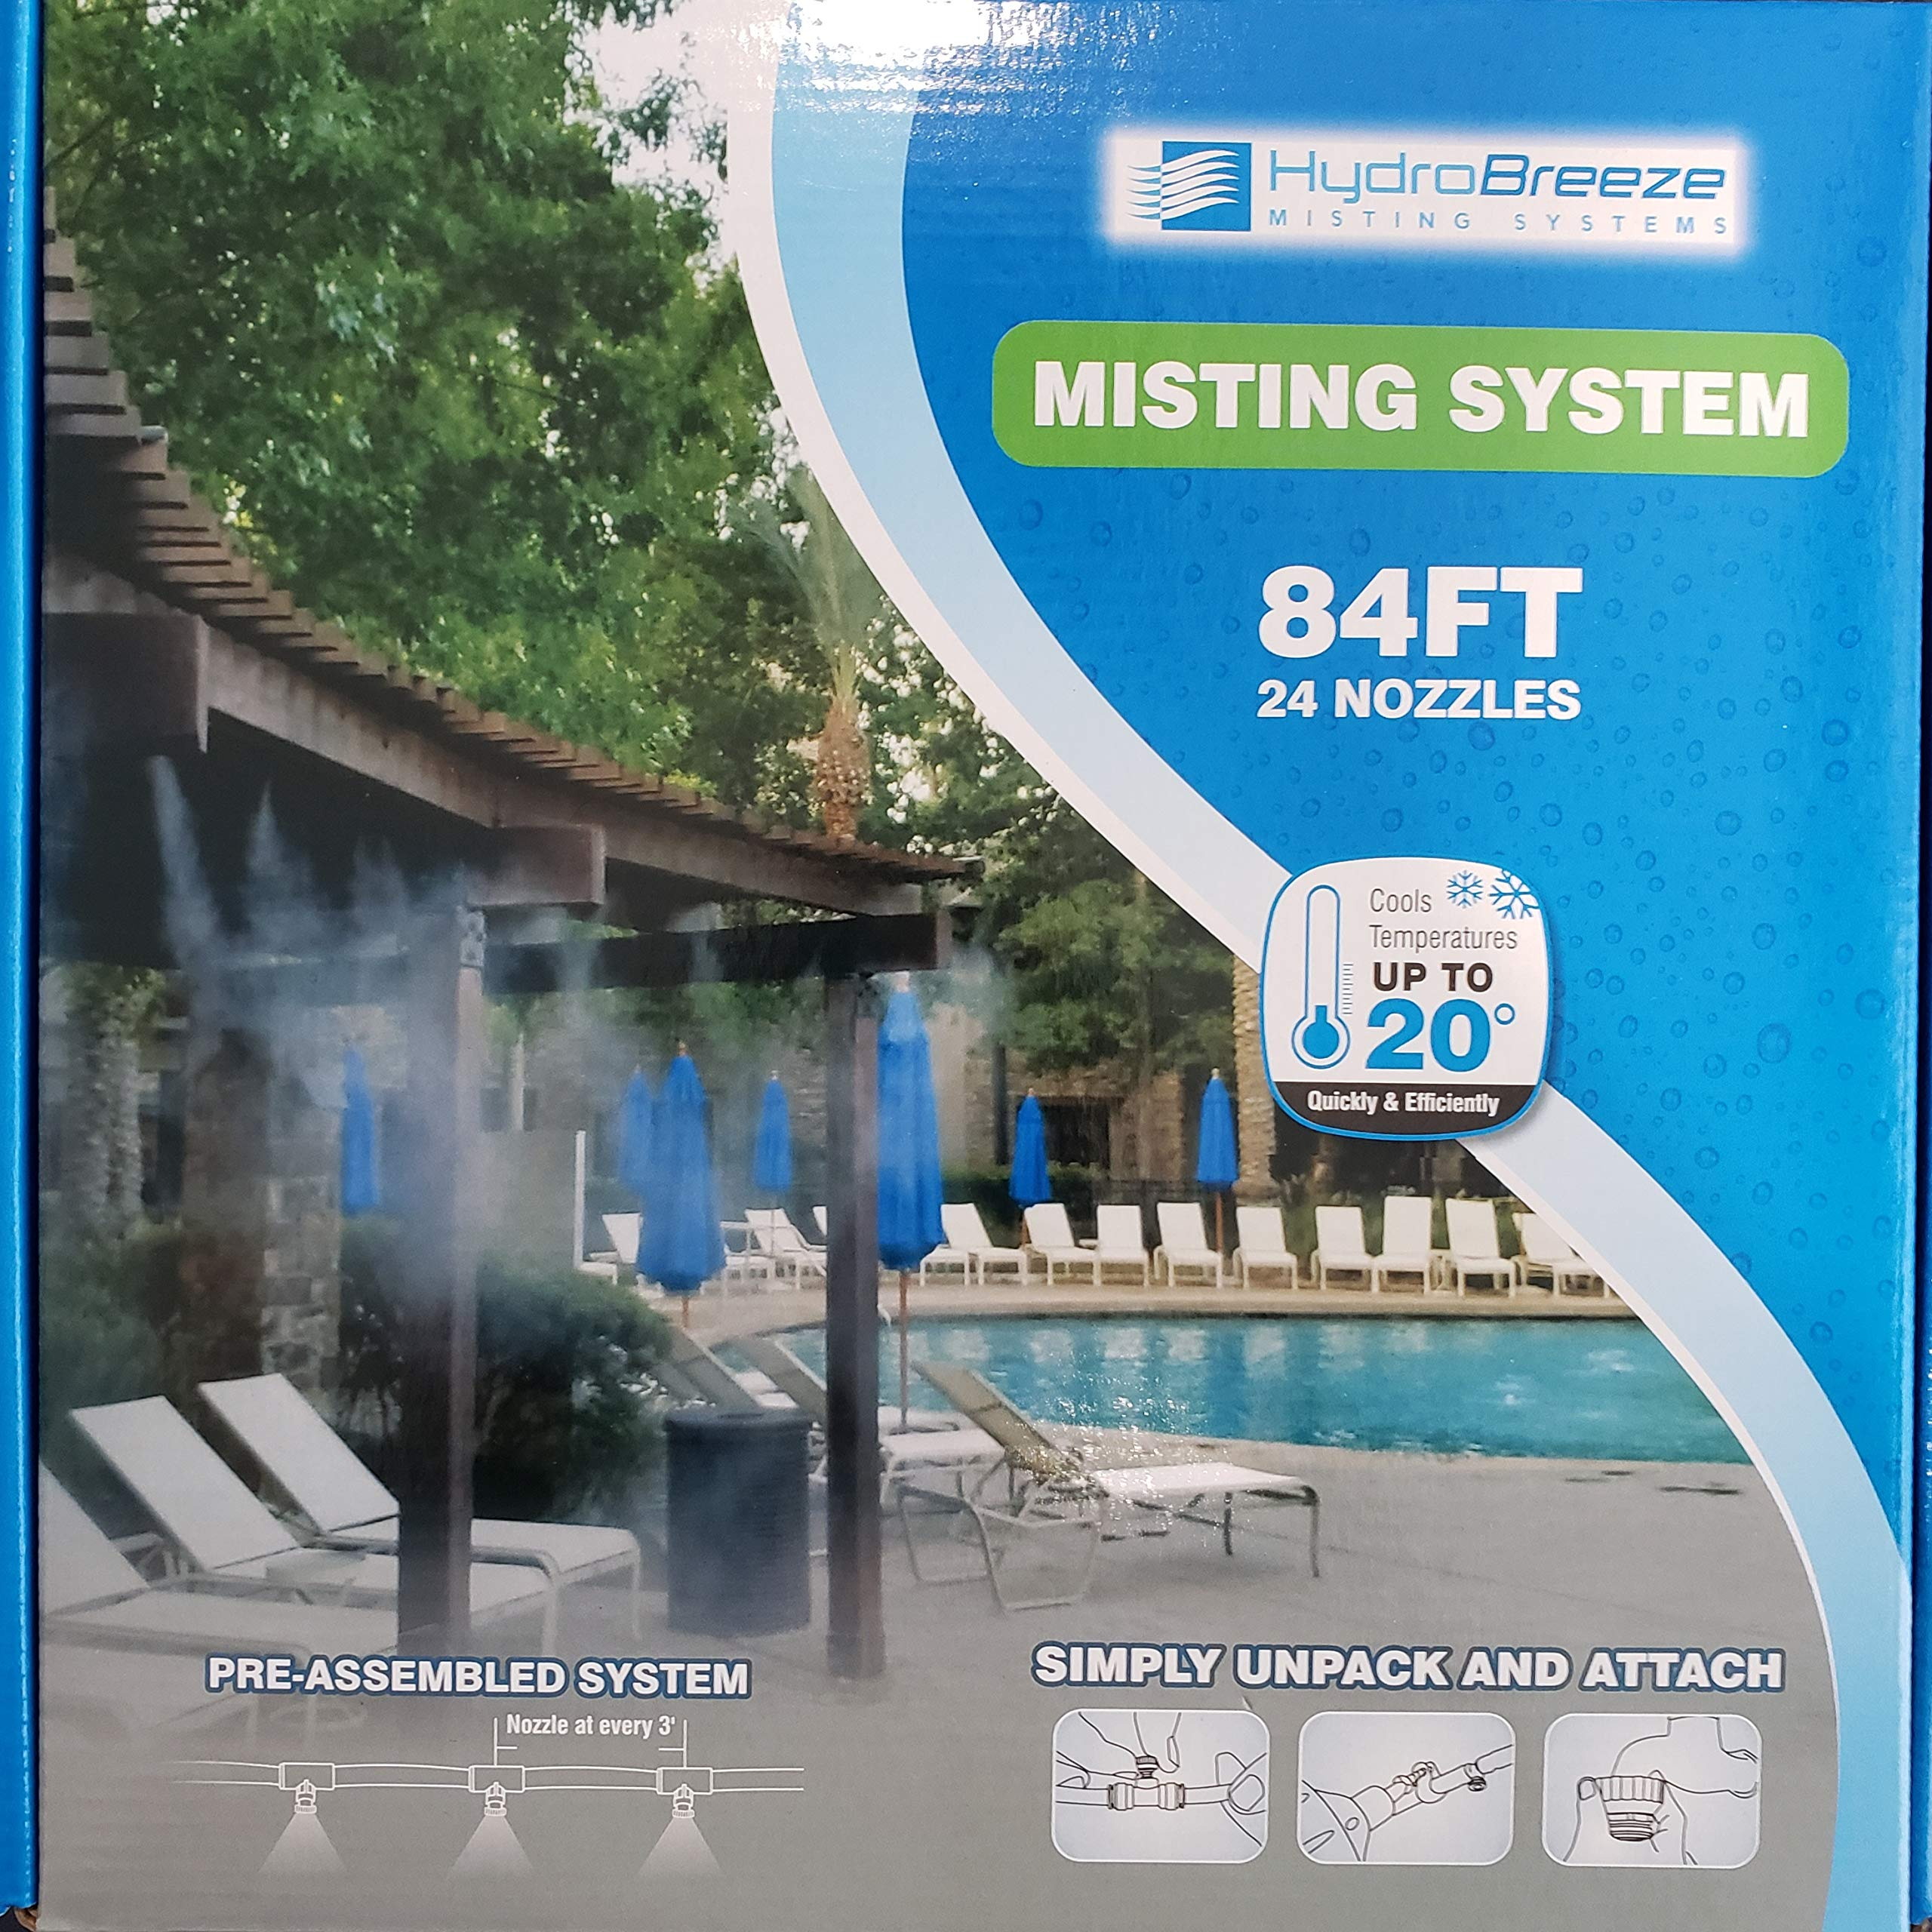 Hydrobreeze Pre-Assembled Misting System 84 Feet 1/4 in Beige Tubing - 24 Nozzles by Hydrobreeze